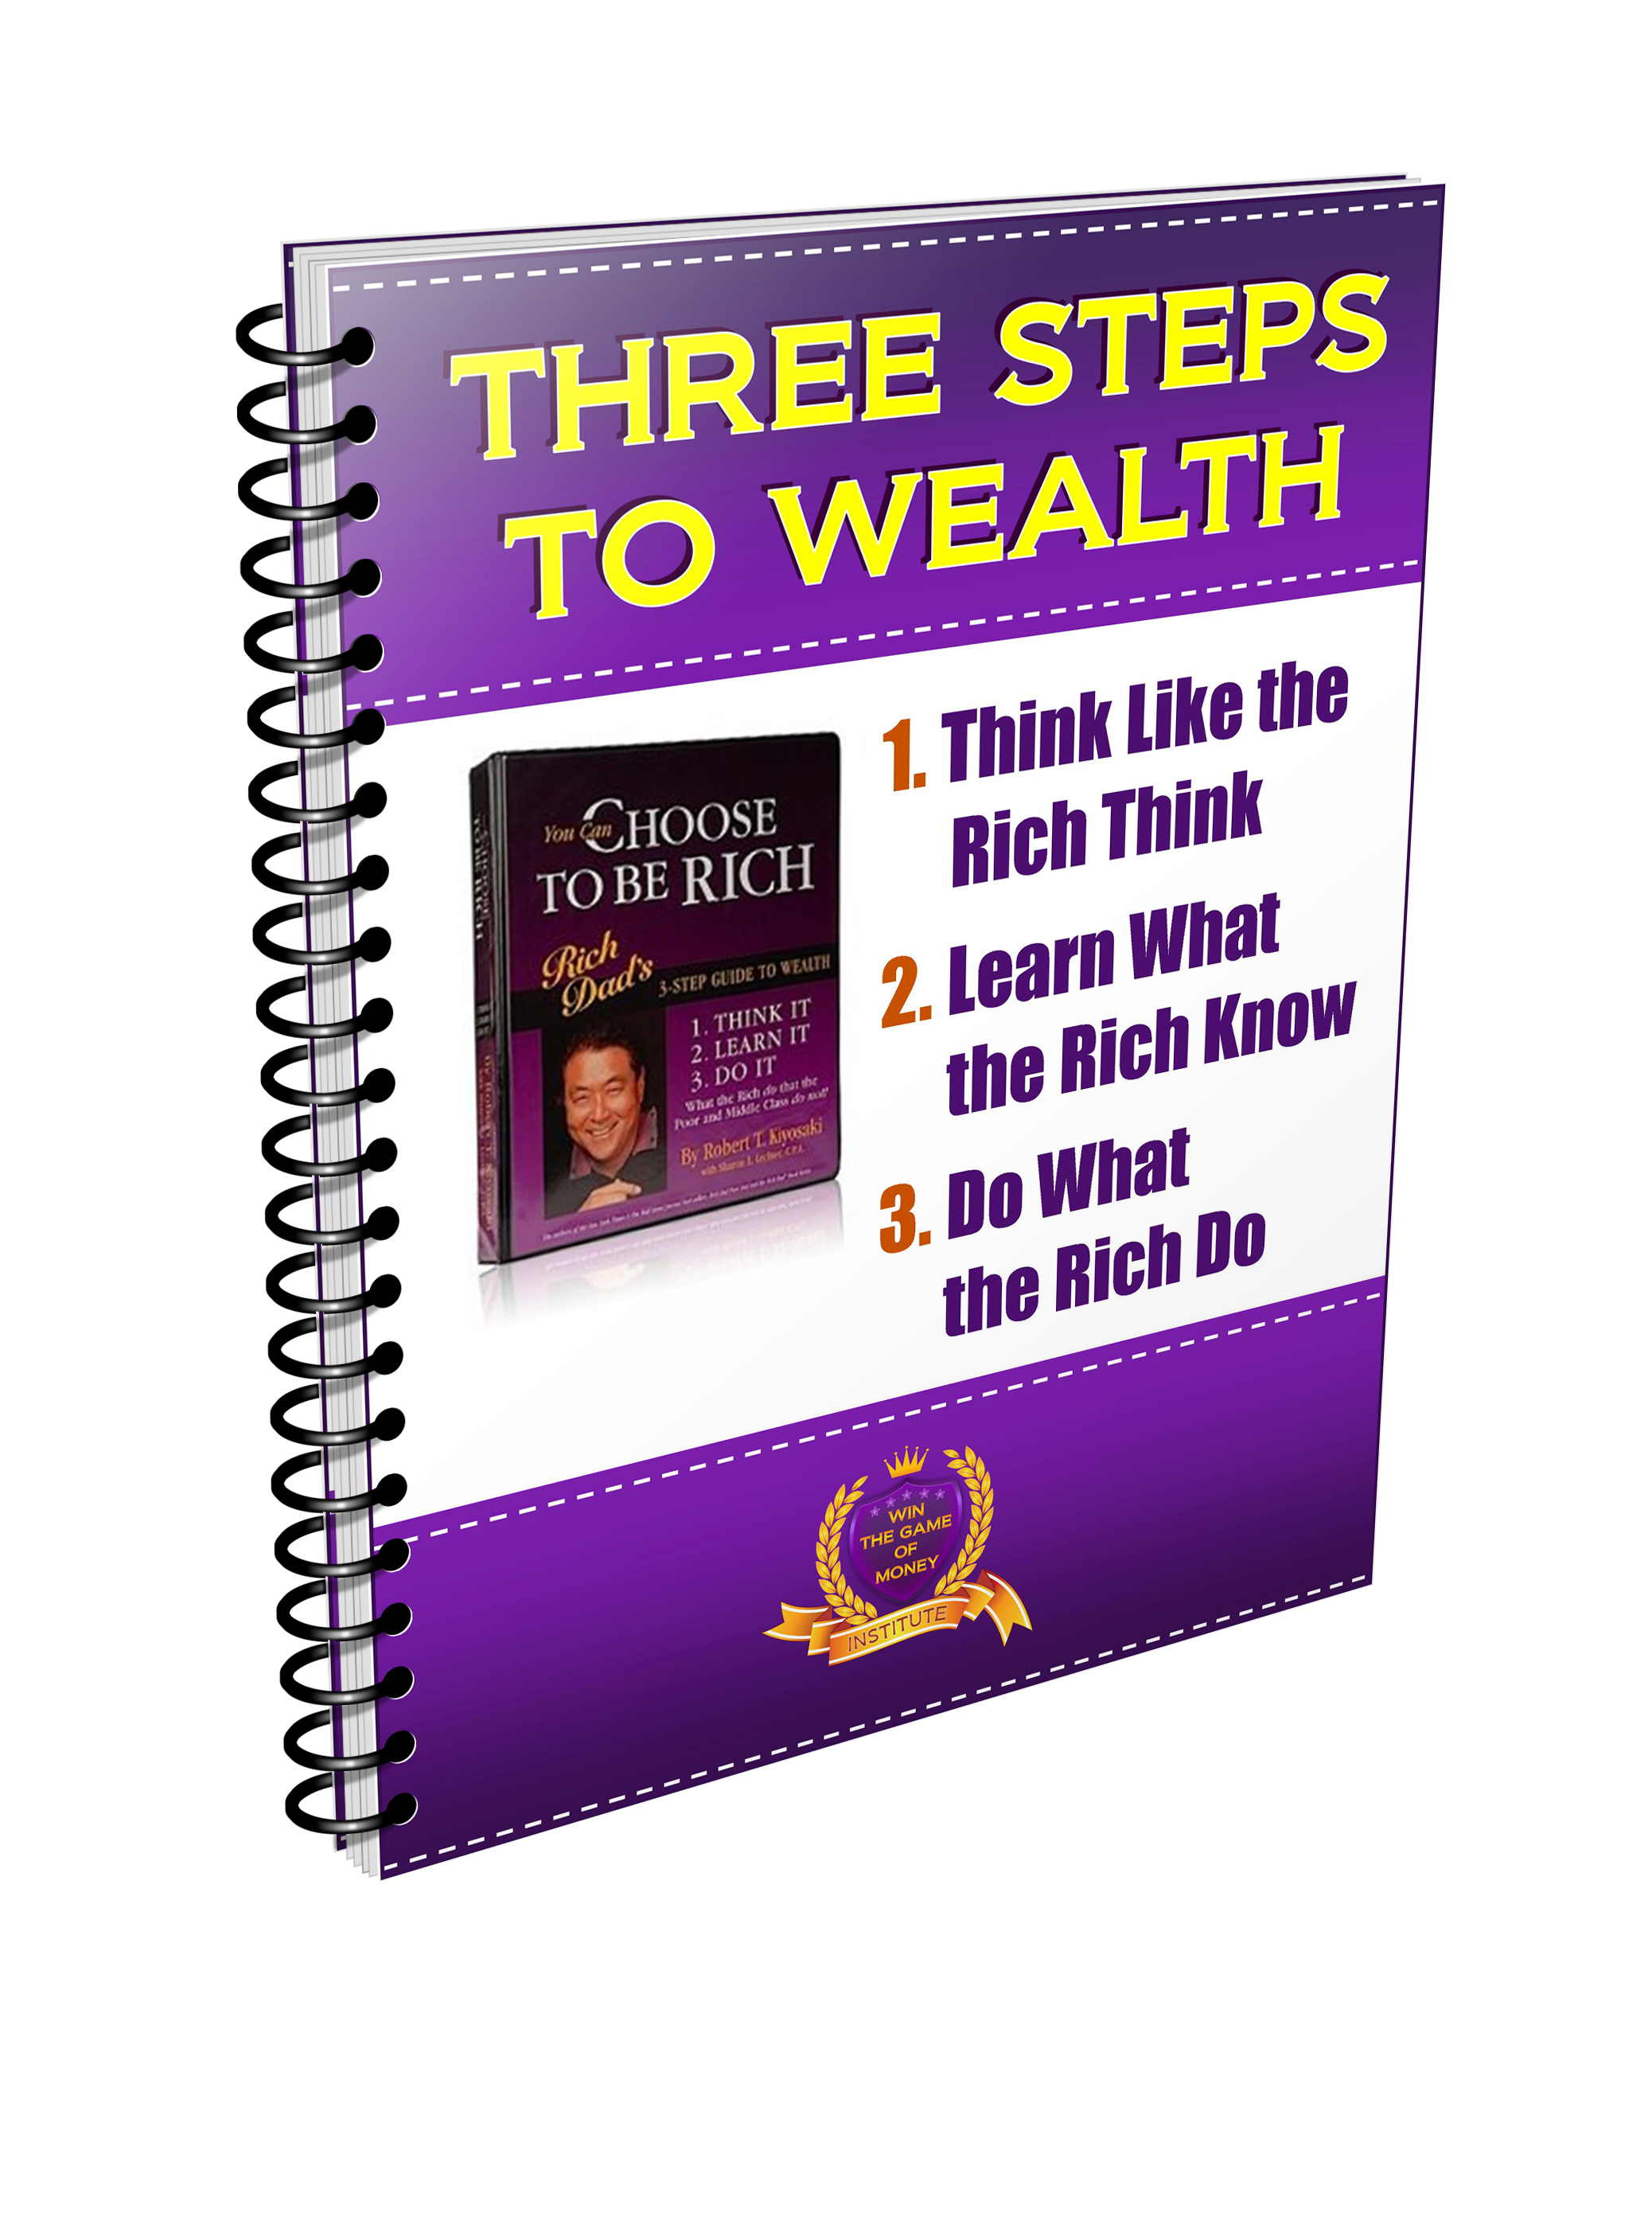 Bob Ritchey of the Win the Game of Money Institute brings you this Special Report on how to become financially free.